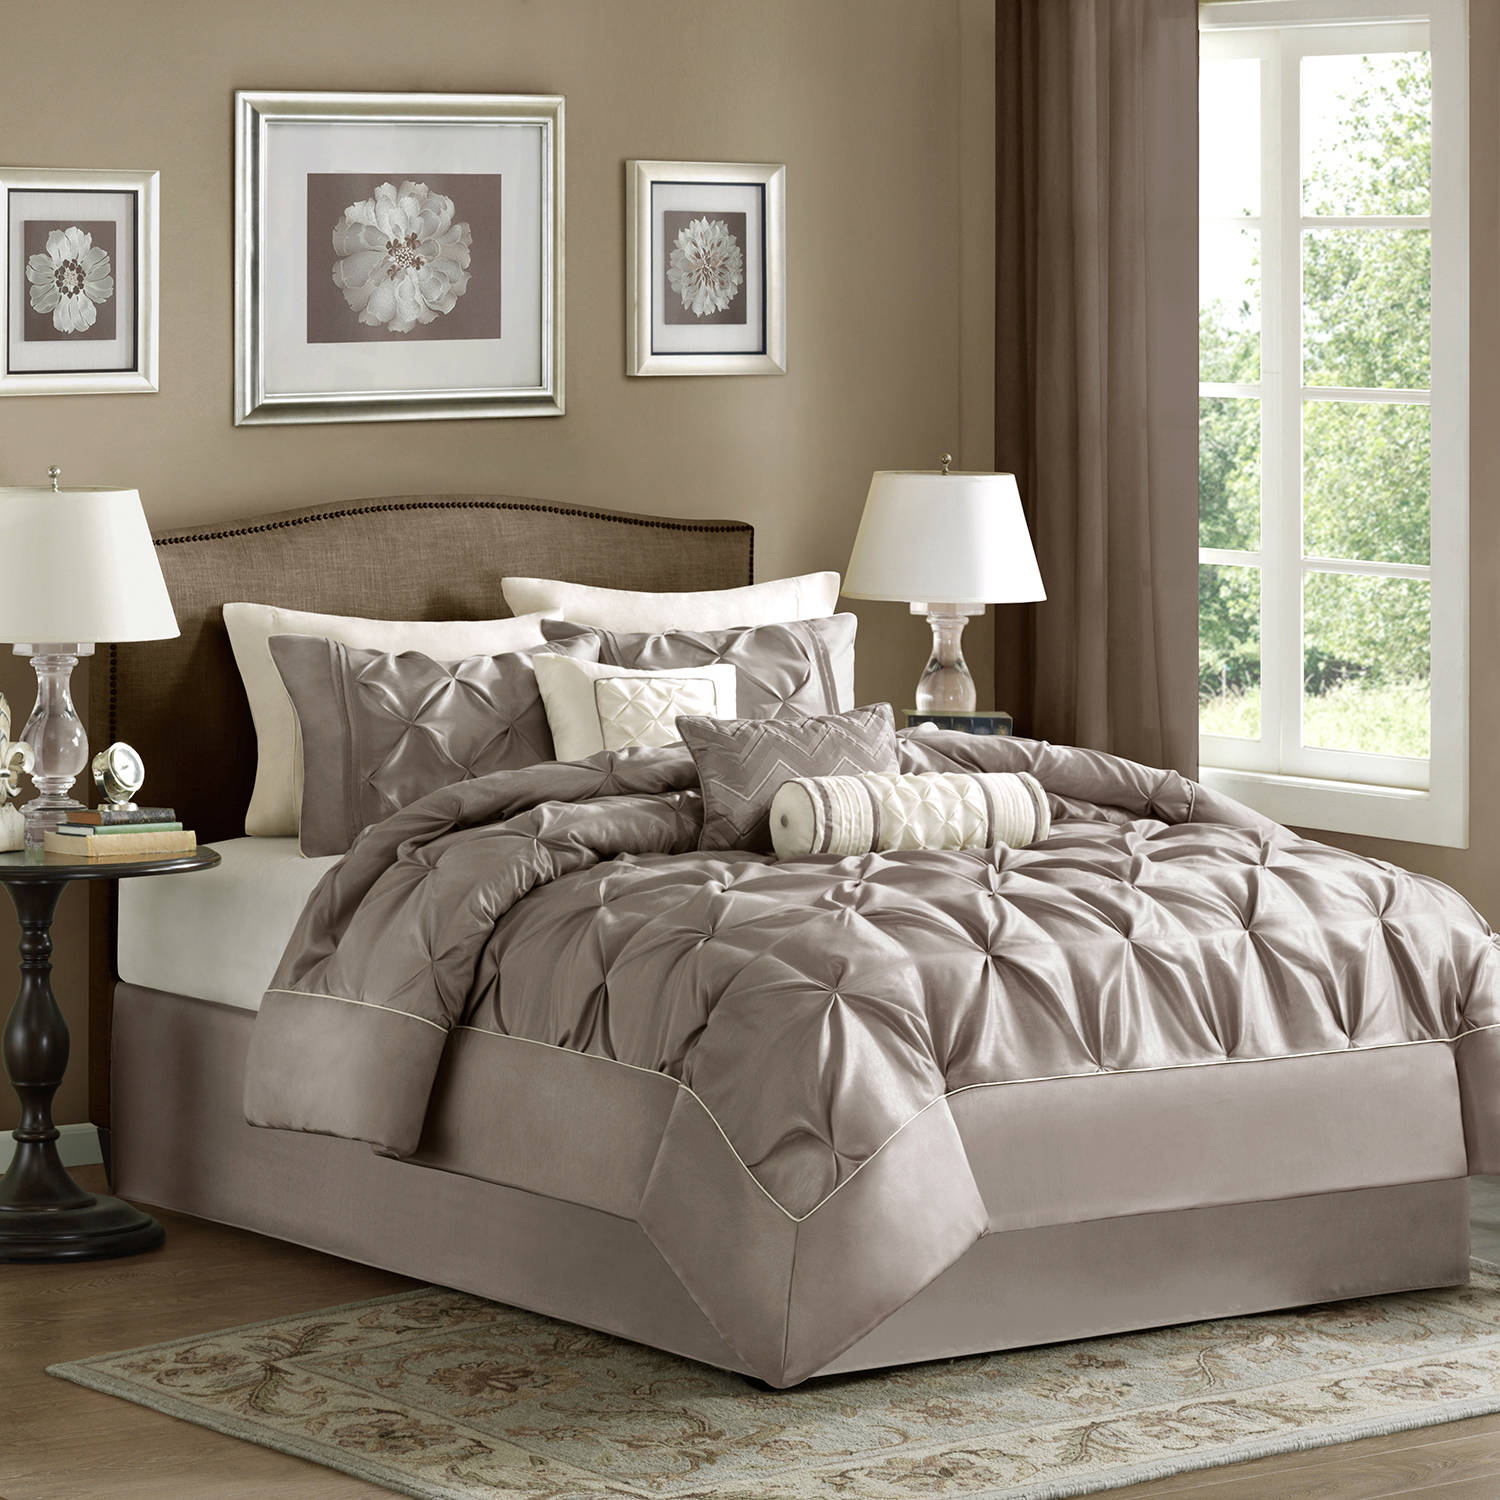 Image of: Bedding Collection Color